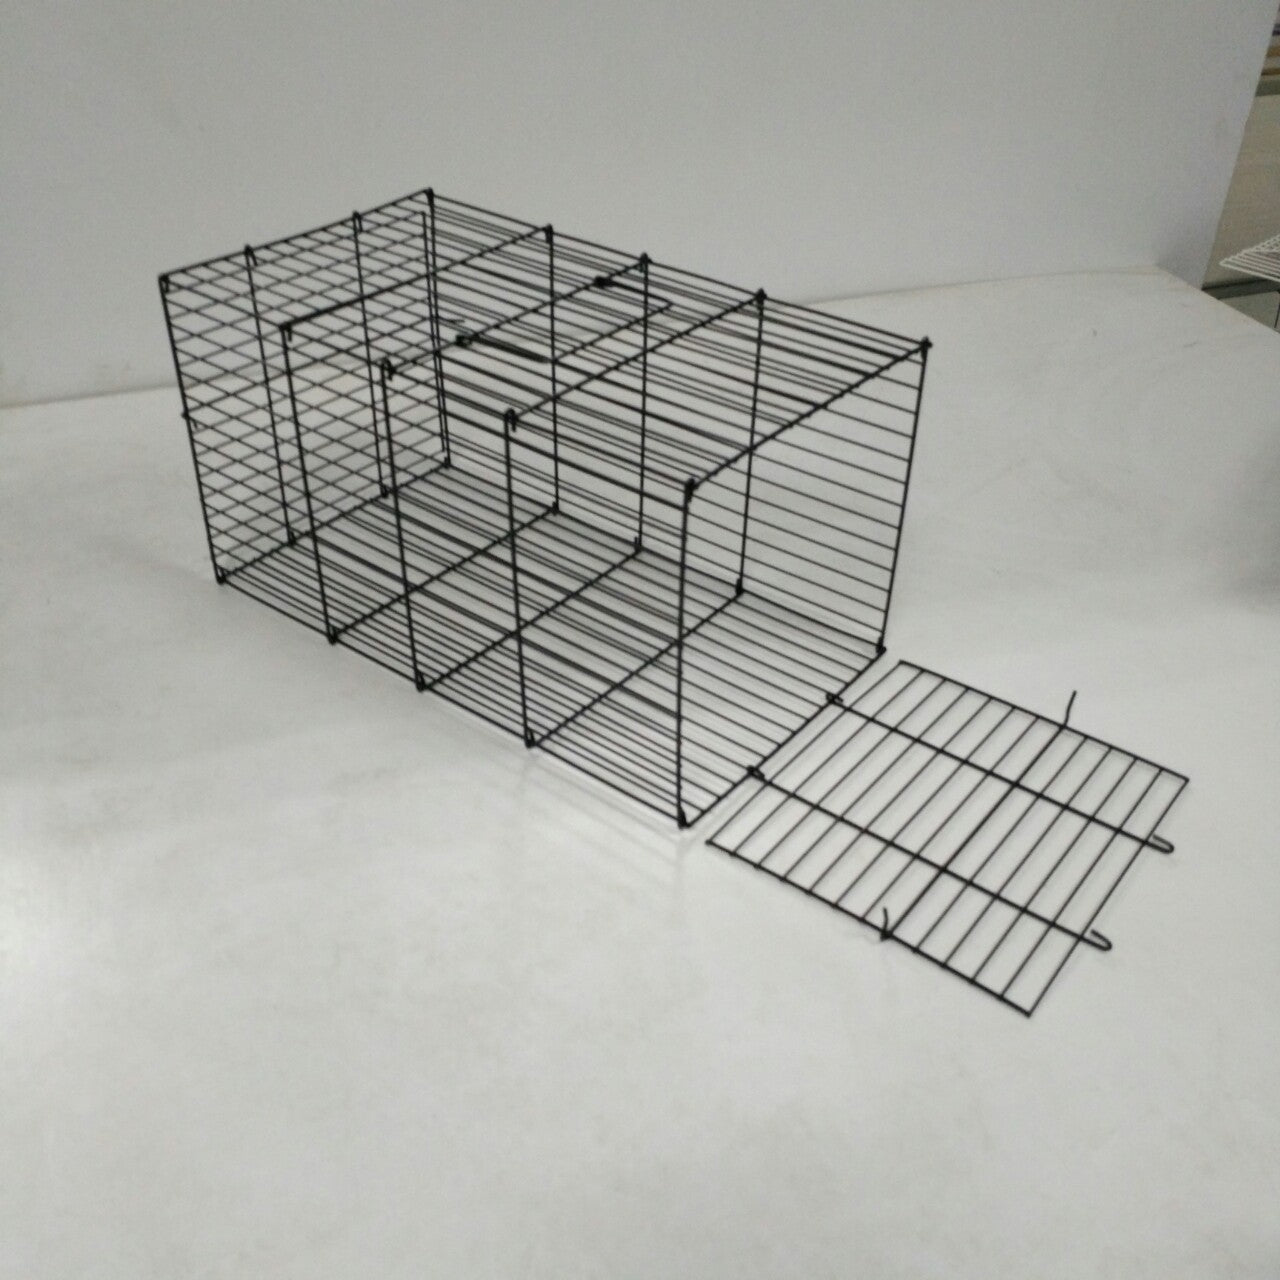 Bamboo Rat Transport Cage Dragon Cat Cage Rabbit Cage Dutch Pig 360× 200× 200 can be ordered